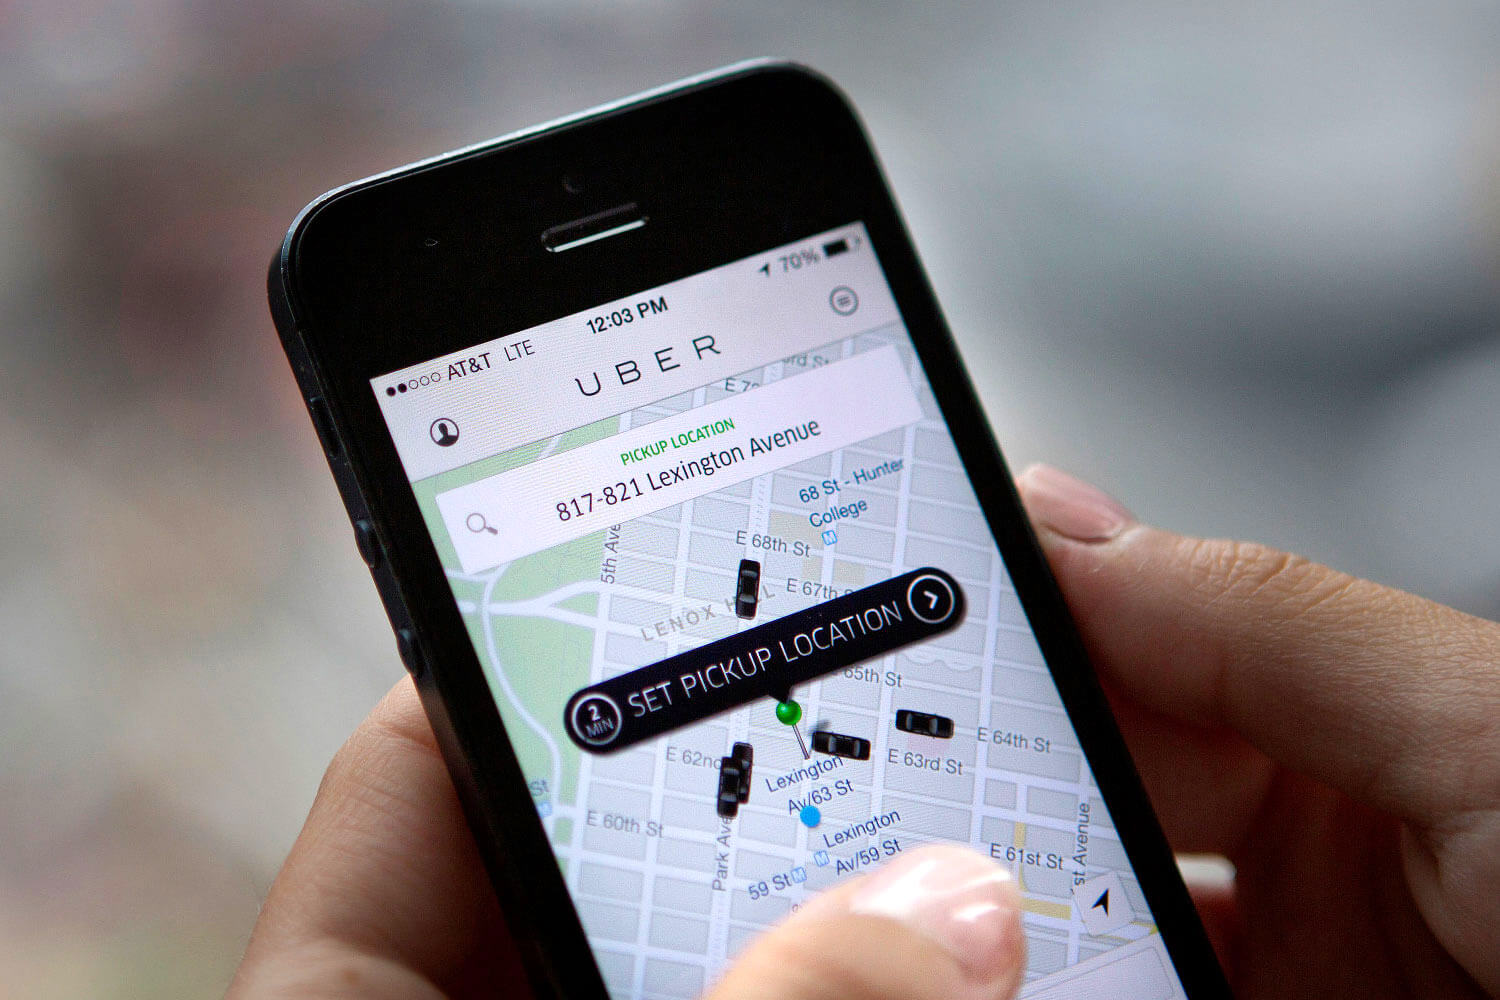 2016 Uber breach exposed details of 57 million customers; company paid hackers $100,000 to cover it up